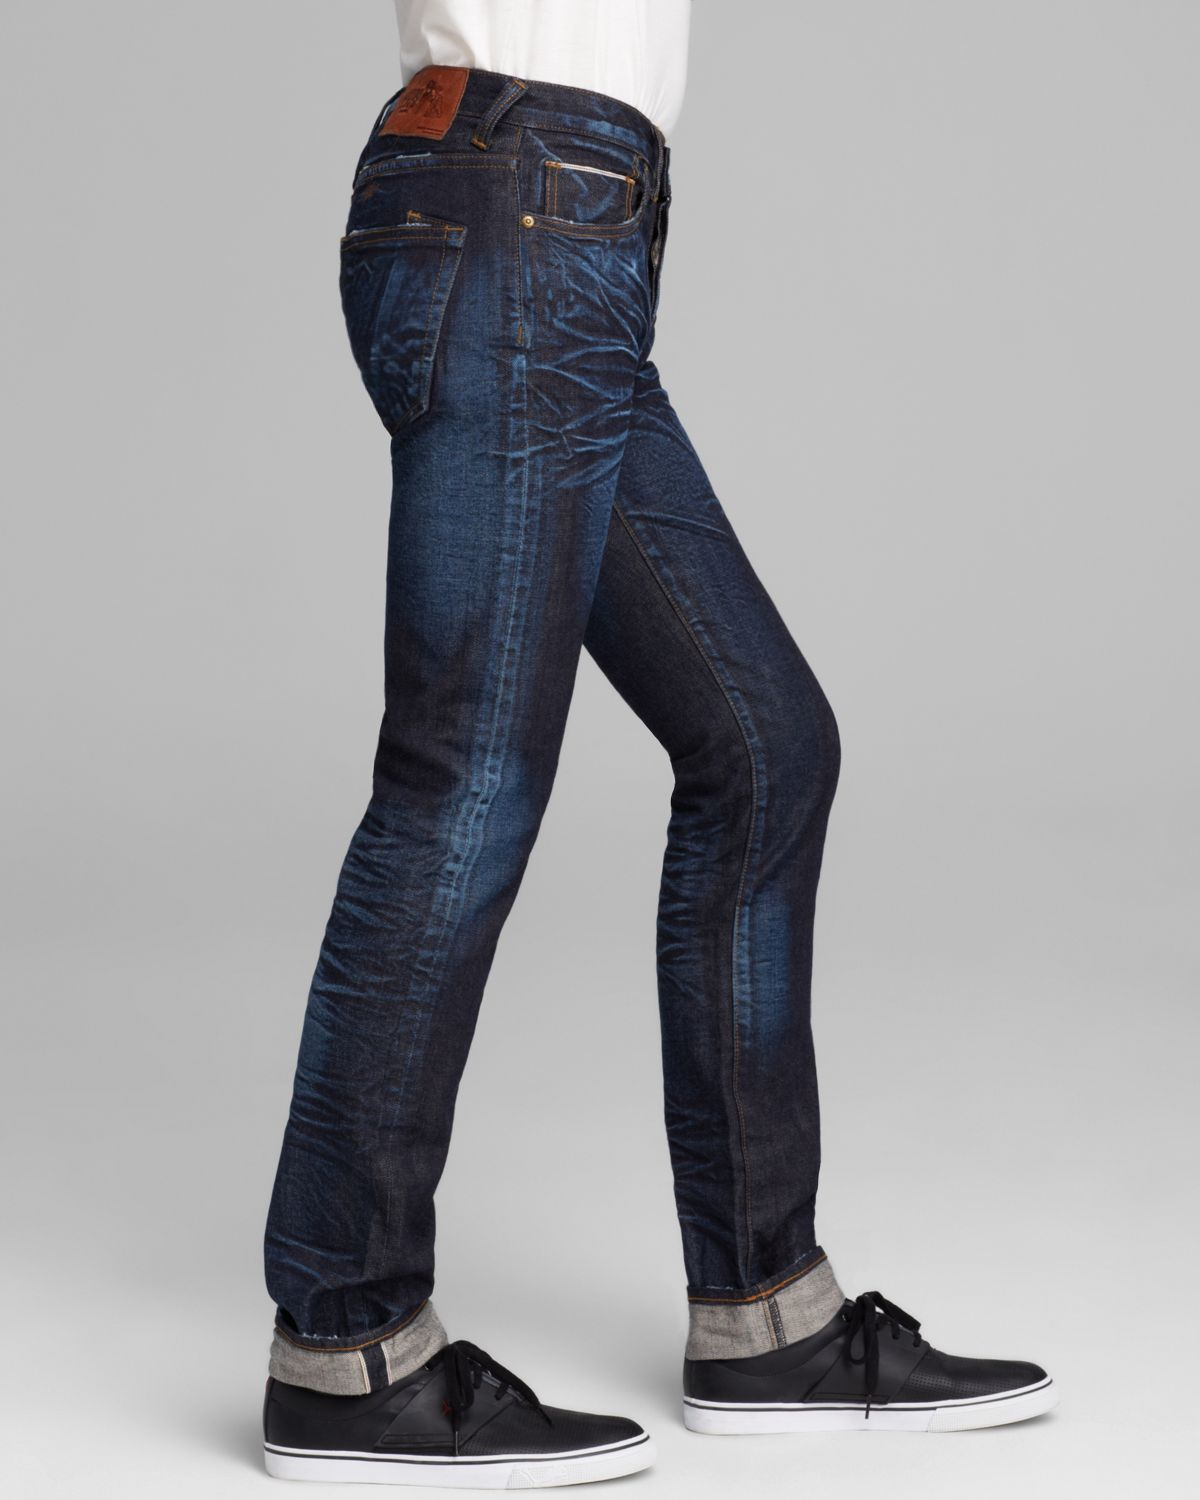 57450ffdcdeb07 PRPS Jeans - Japanese Selvage Rambler Super Slim Fit In Six Month Wash in  Blue for Men - Lyst